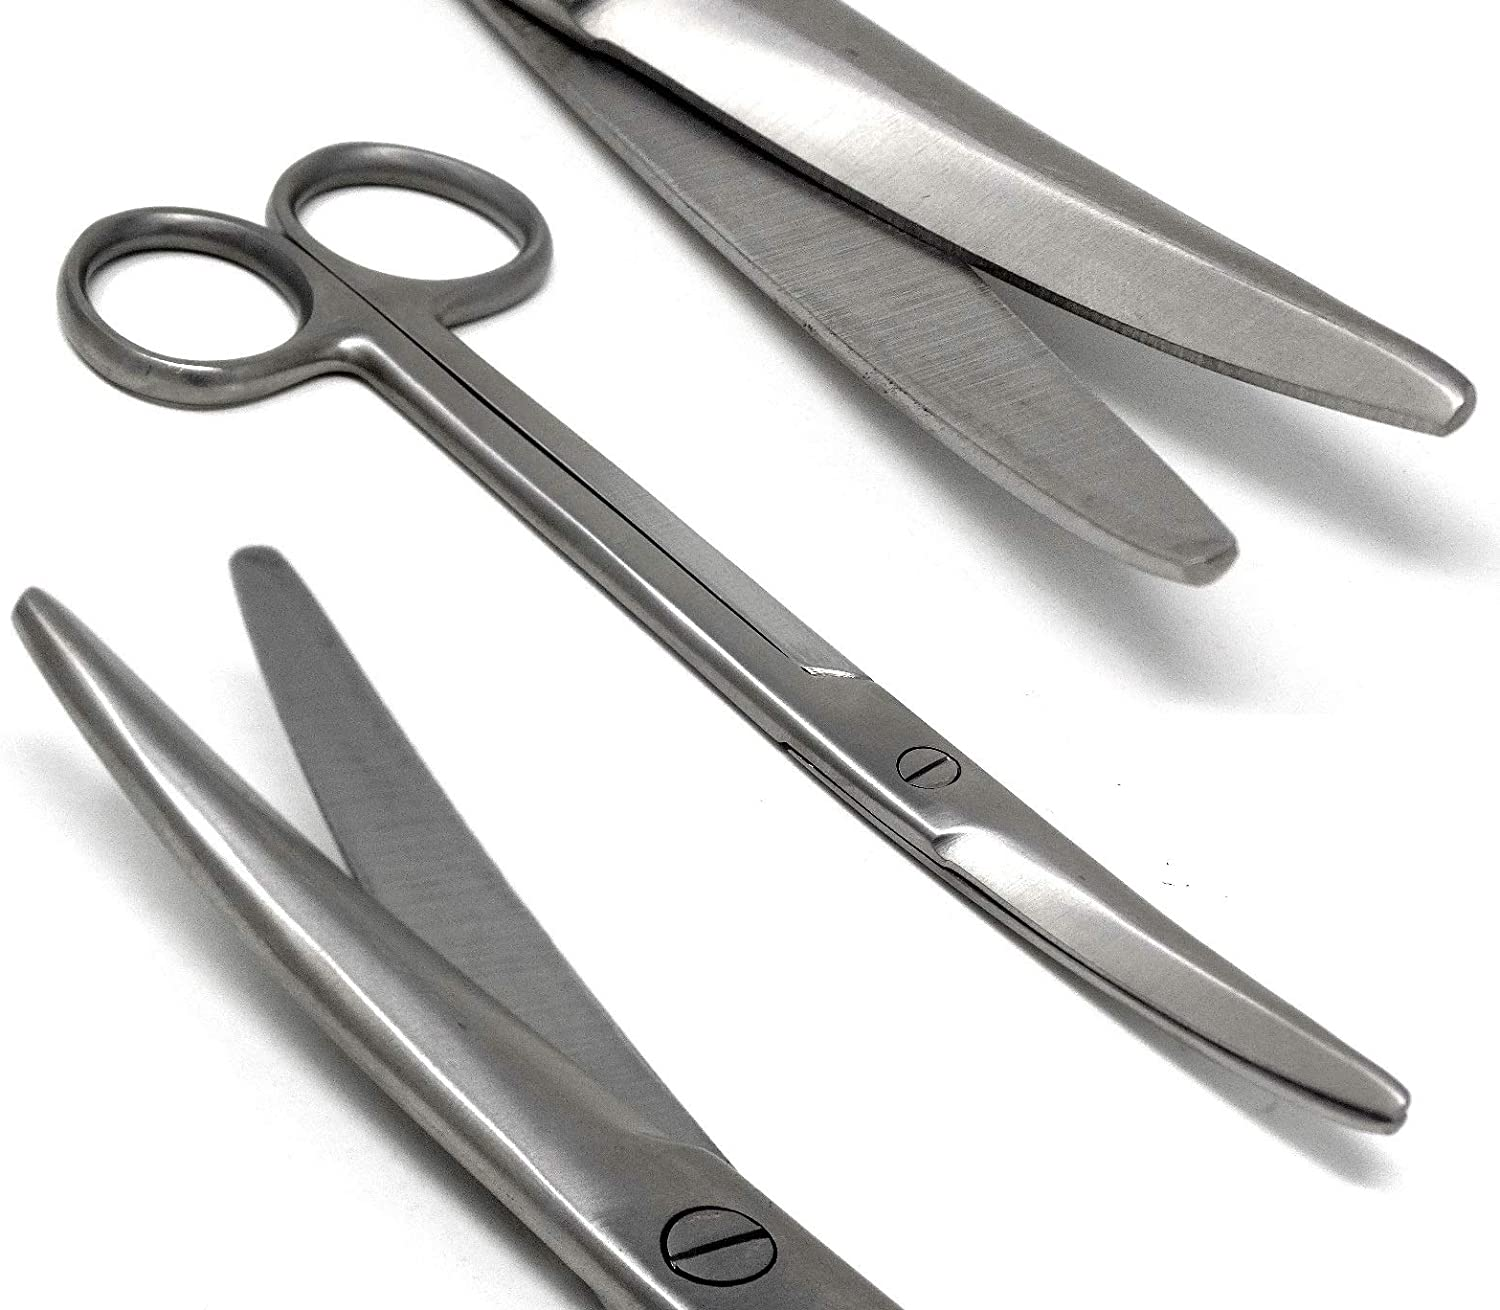 A2Z-MY02 Department store Mayo Max 62% OFF Dissecting Scissors 14cm Stainless Curved 5.5